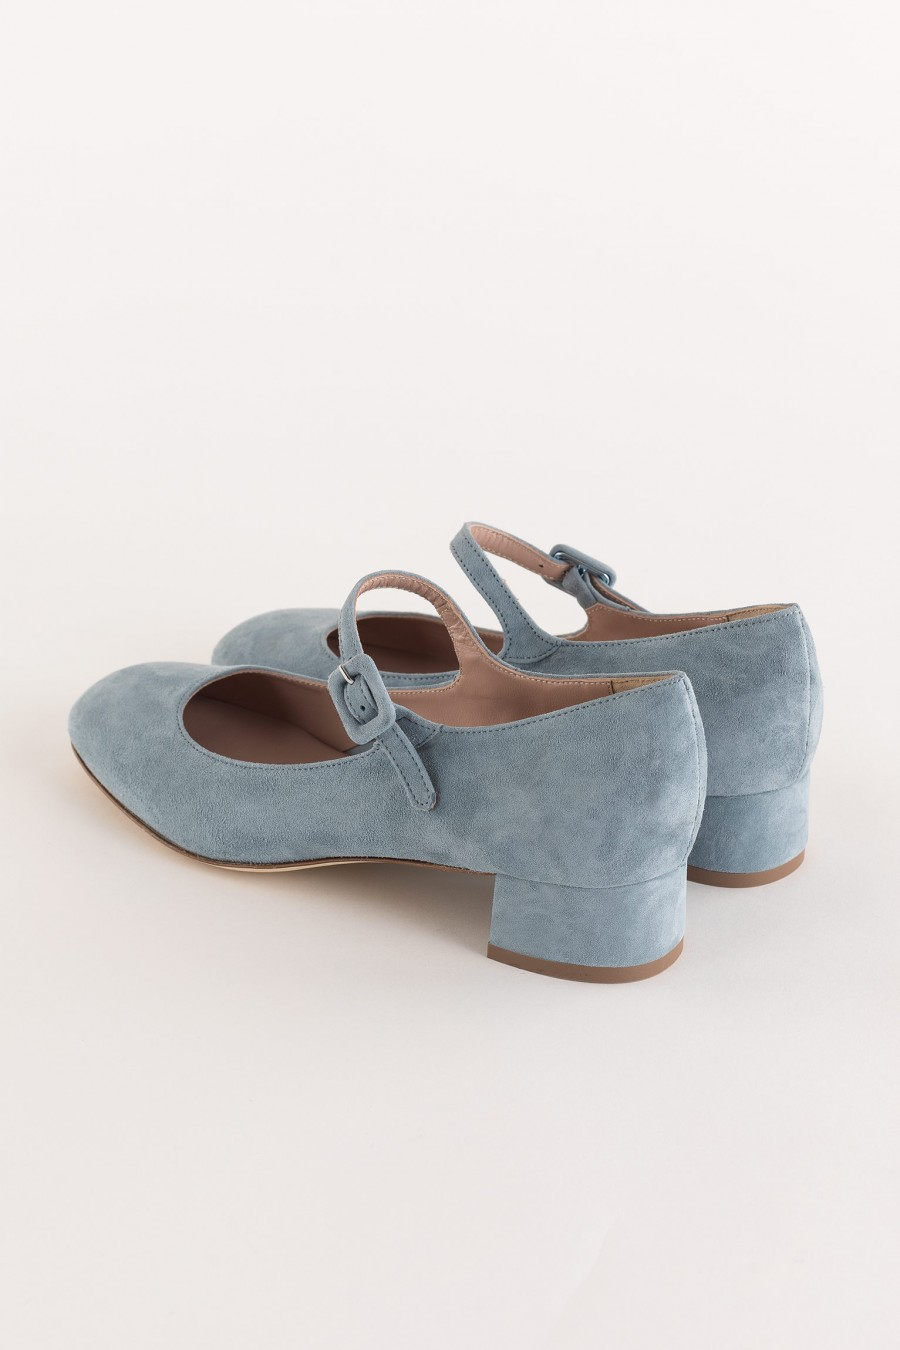 light blue mary jane  with heel and strap